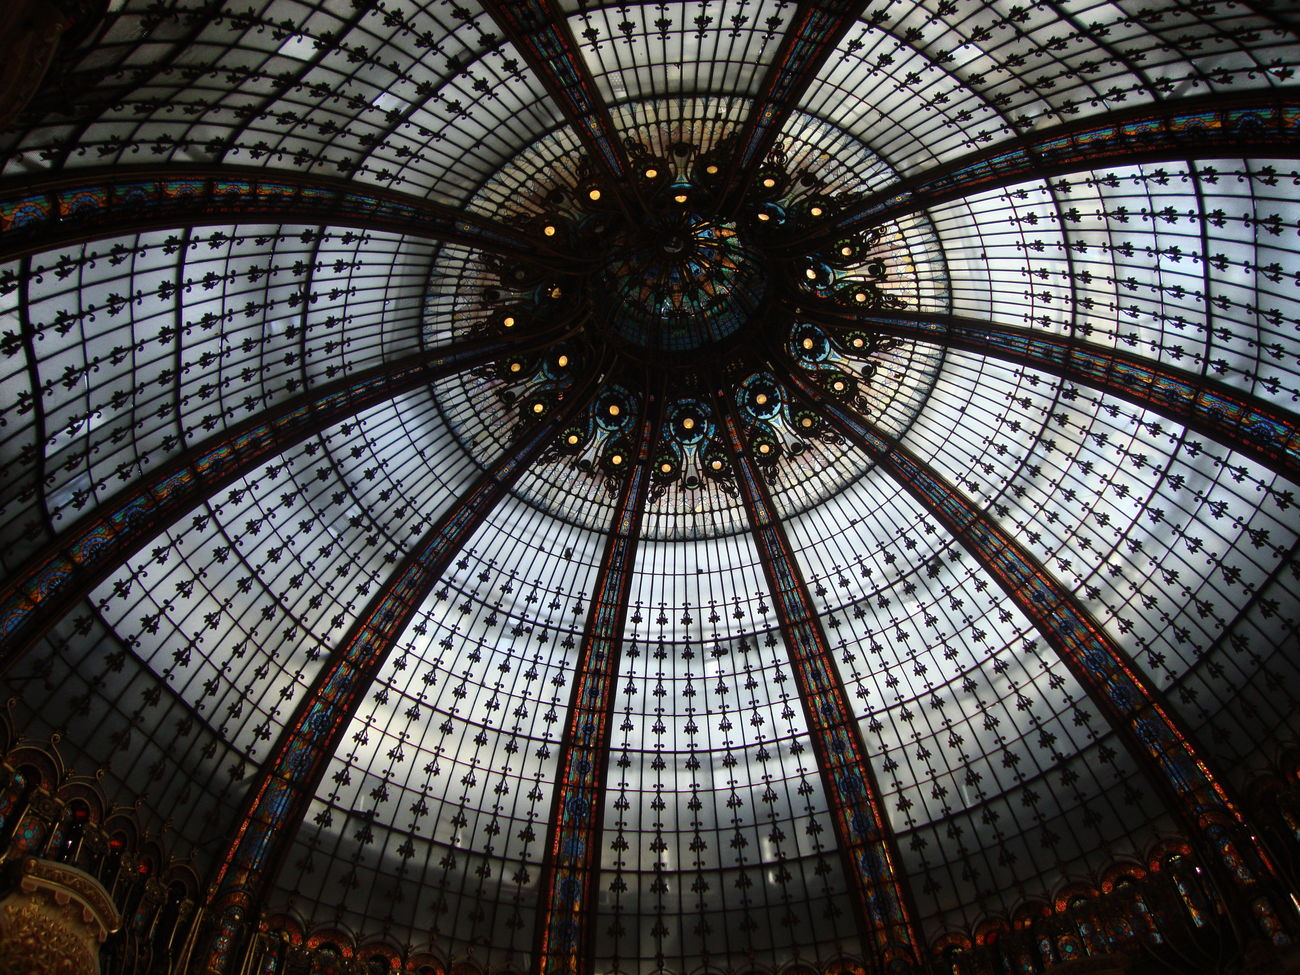 galerie lafayette...formidable Fantastic Taking Photos Enjoying Life Just Shoot.. Check This Out Enjoying Art Hello World Beautiful View Eyem Gallery Eyeemphotography Hidden Gems  Somewhere Only We Know Art Architecture Photography Artist In Action Remember This Paris Vive La France Summertime Special Moments Enjoying Time Look Up The Sky Look Up And See Beauty Inspired By Beauty First Eyeem Photo